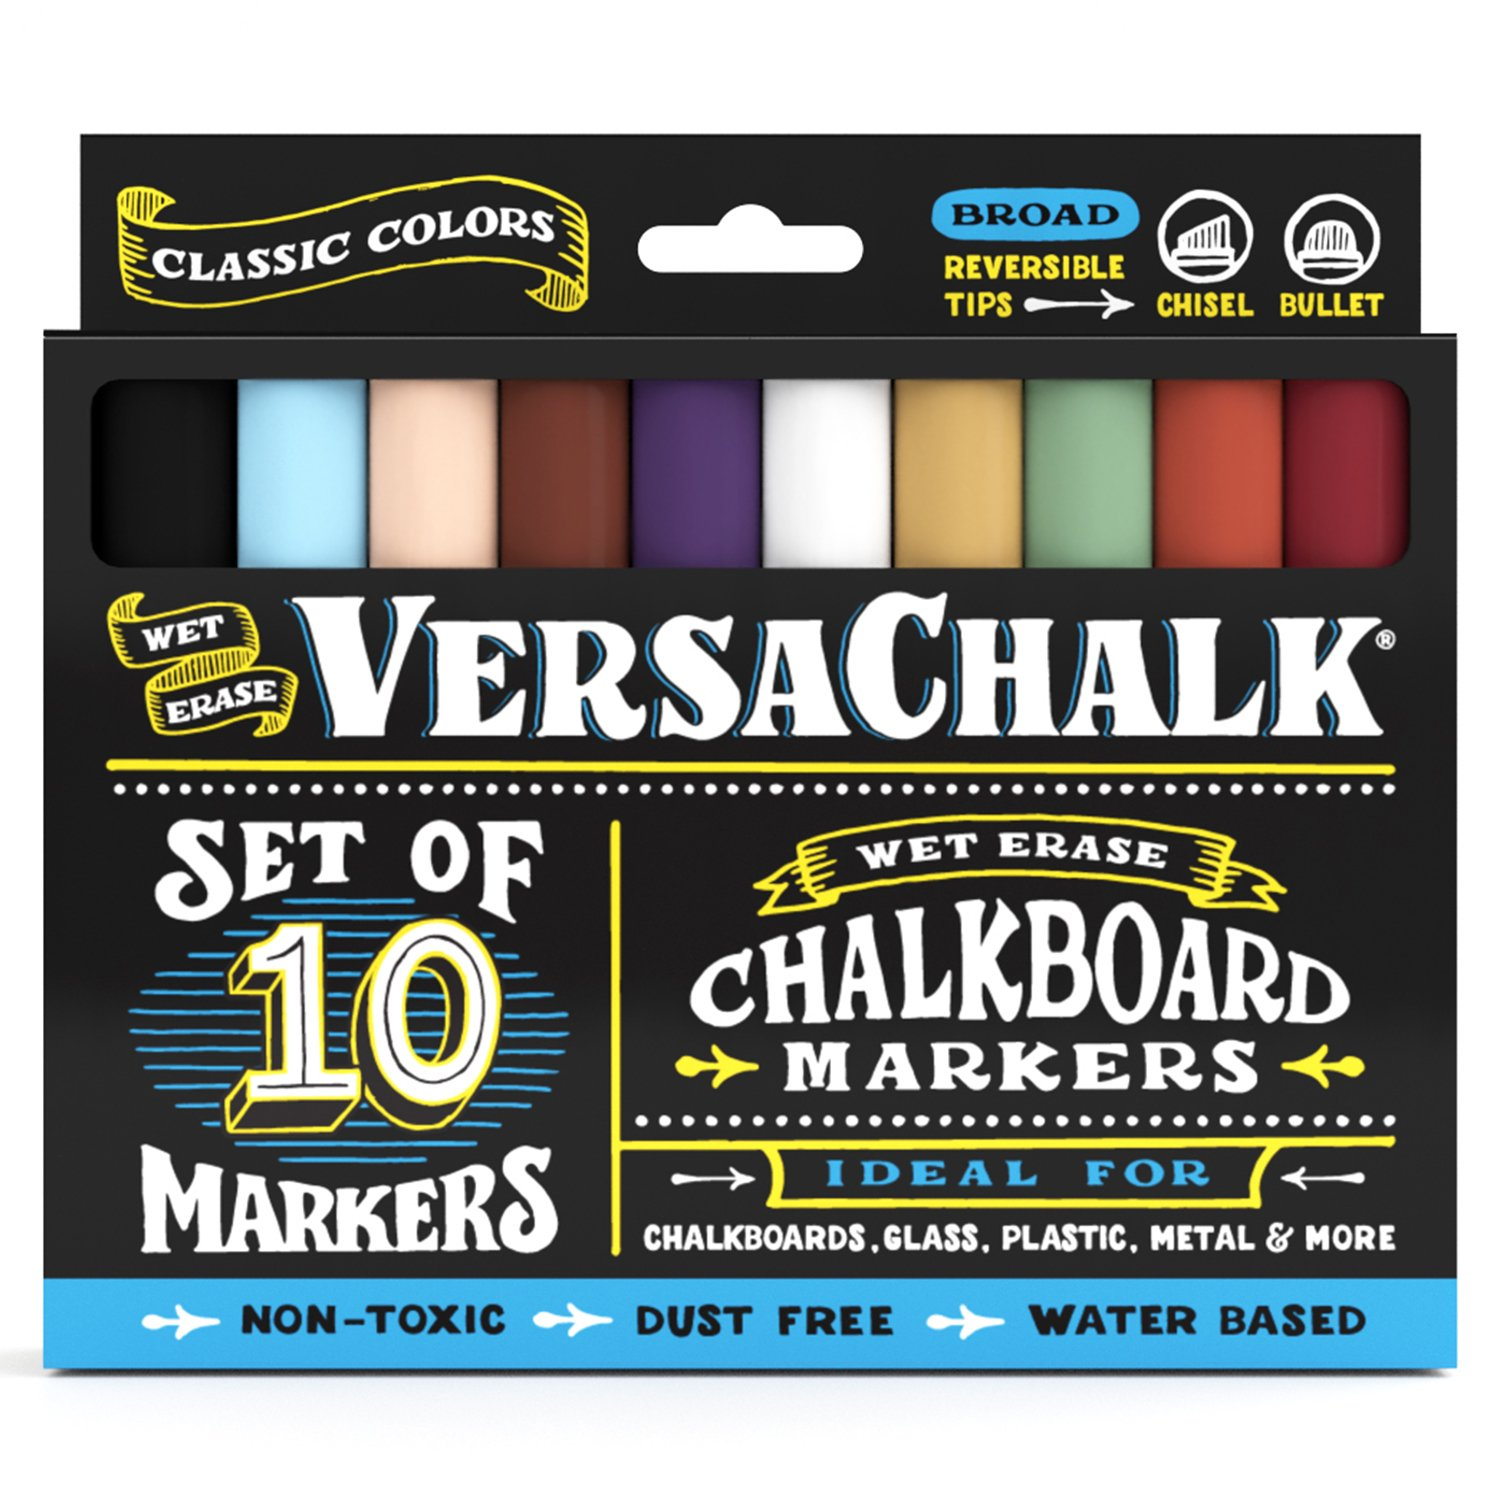 Classic Liquid Chalk Ink Chalkboard Markers by VersaChalk - Wet Erase Chalk Pens for Chalkboard Sign, Blackboard, Dry Erase Board (5mm Bold Reversible Tip) by VersaChalk (Image #1)